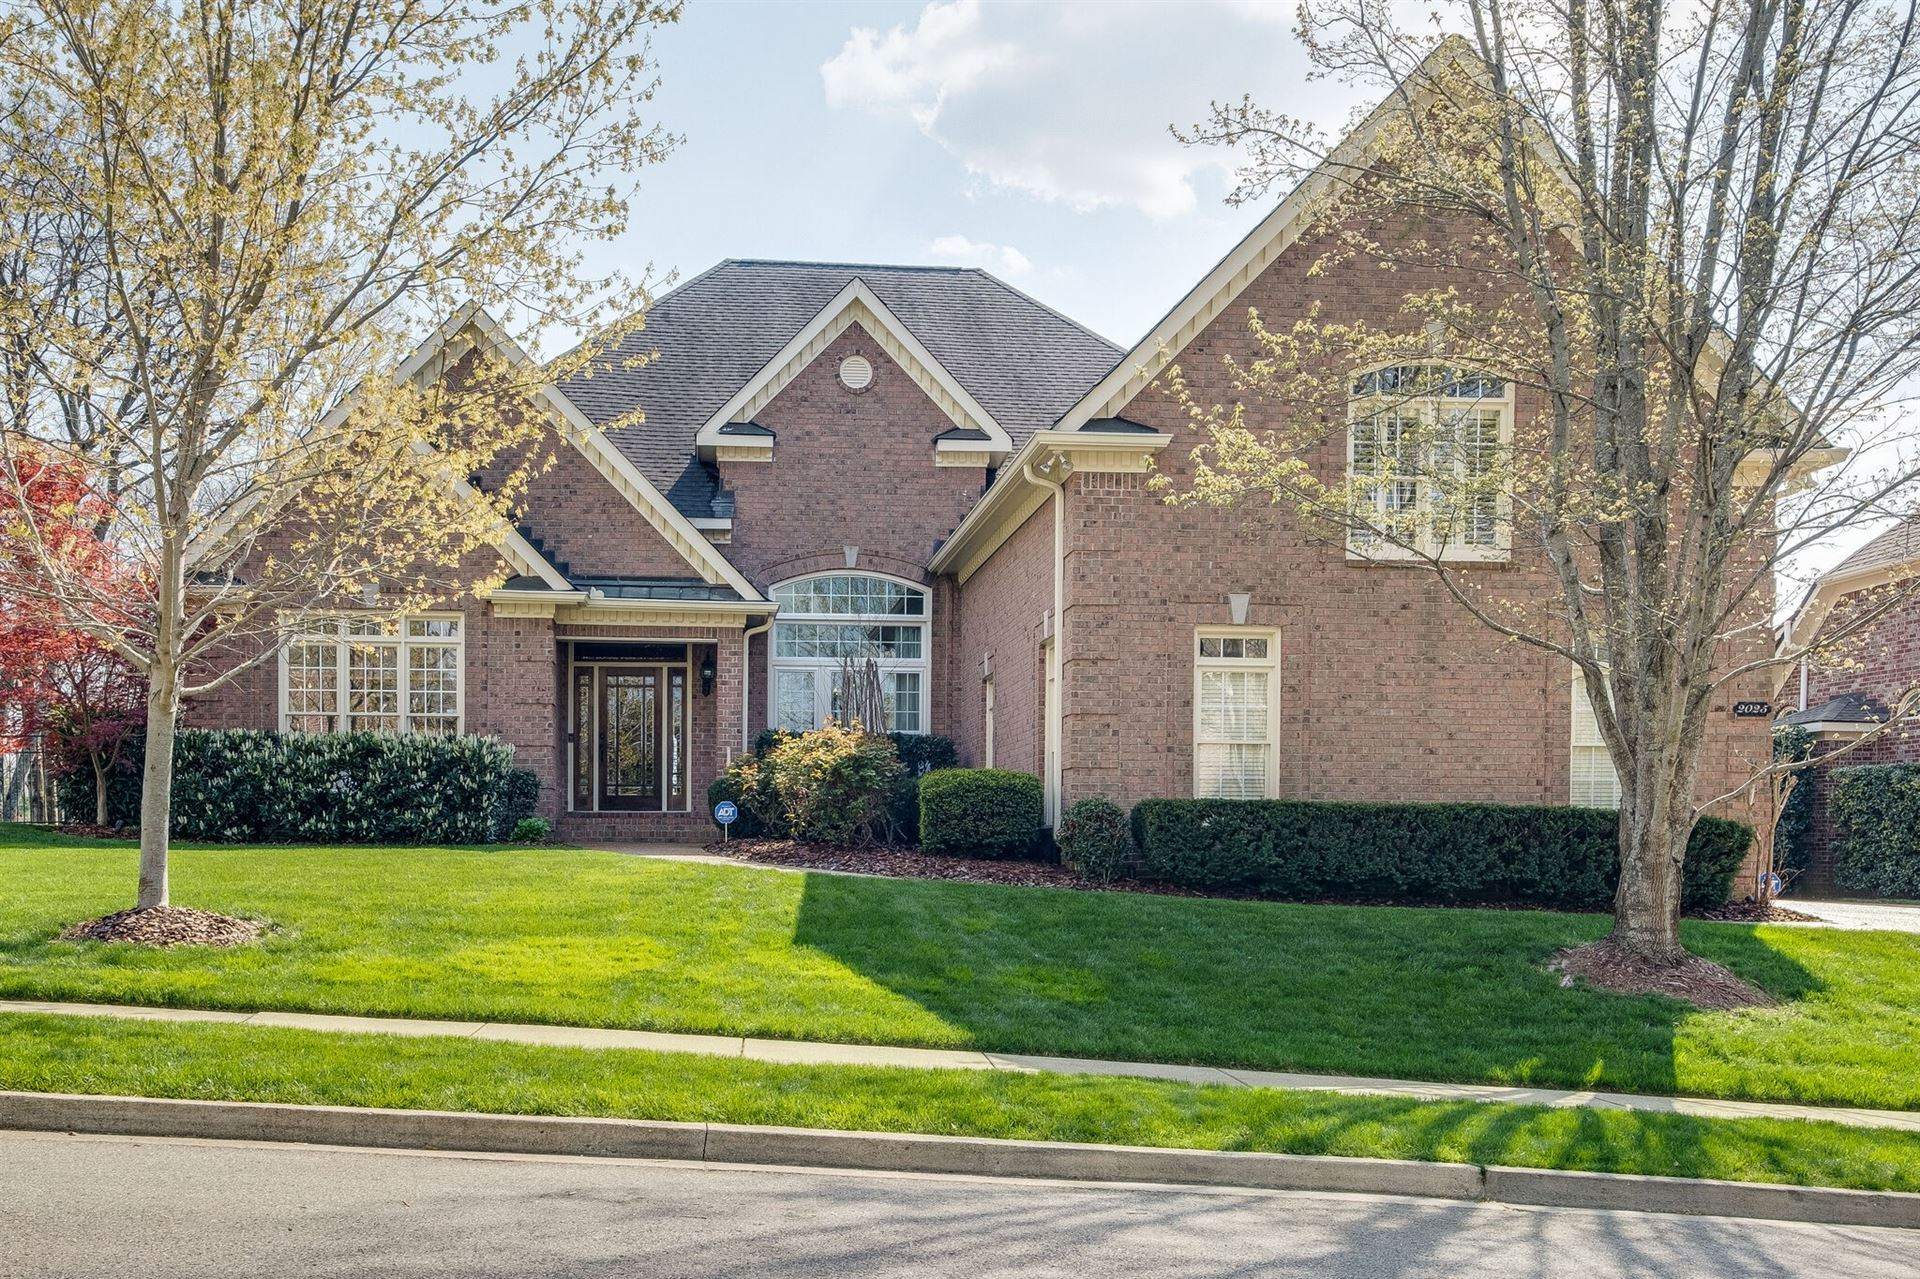 Photo of 2025 Daylily Dr, Franklin, TN 37067 (MLS # 2245480)